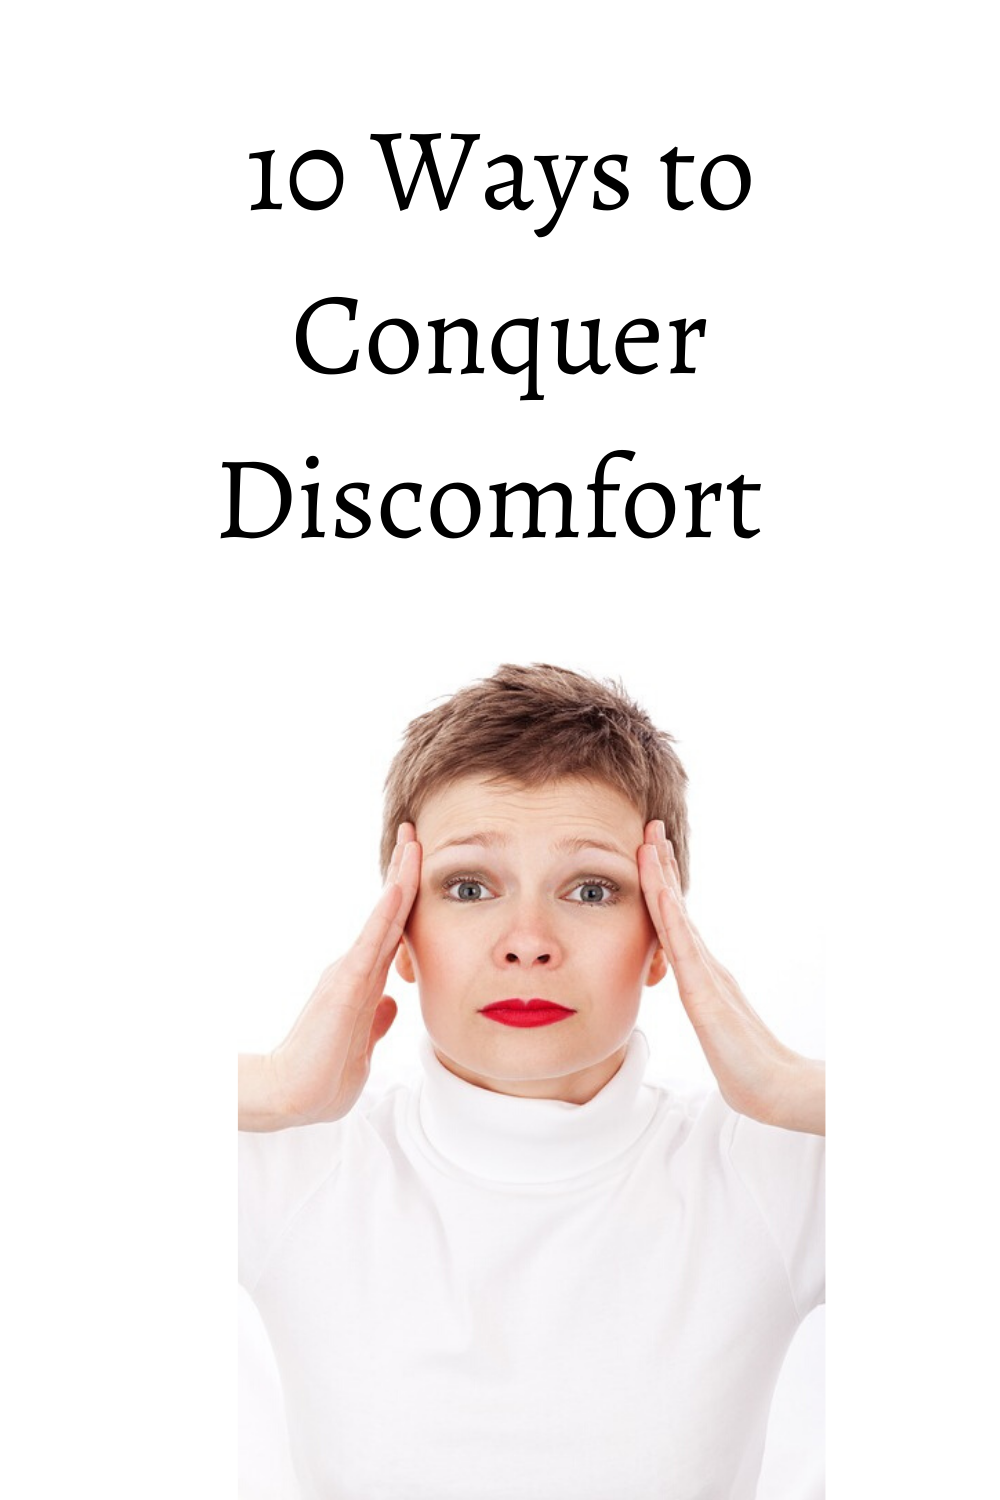 10 Ways to Conquer Discomfort